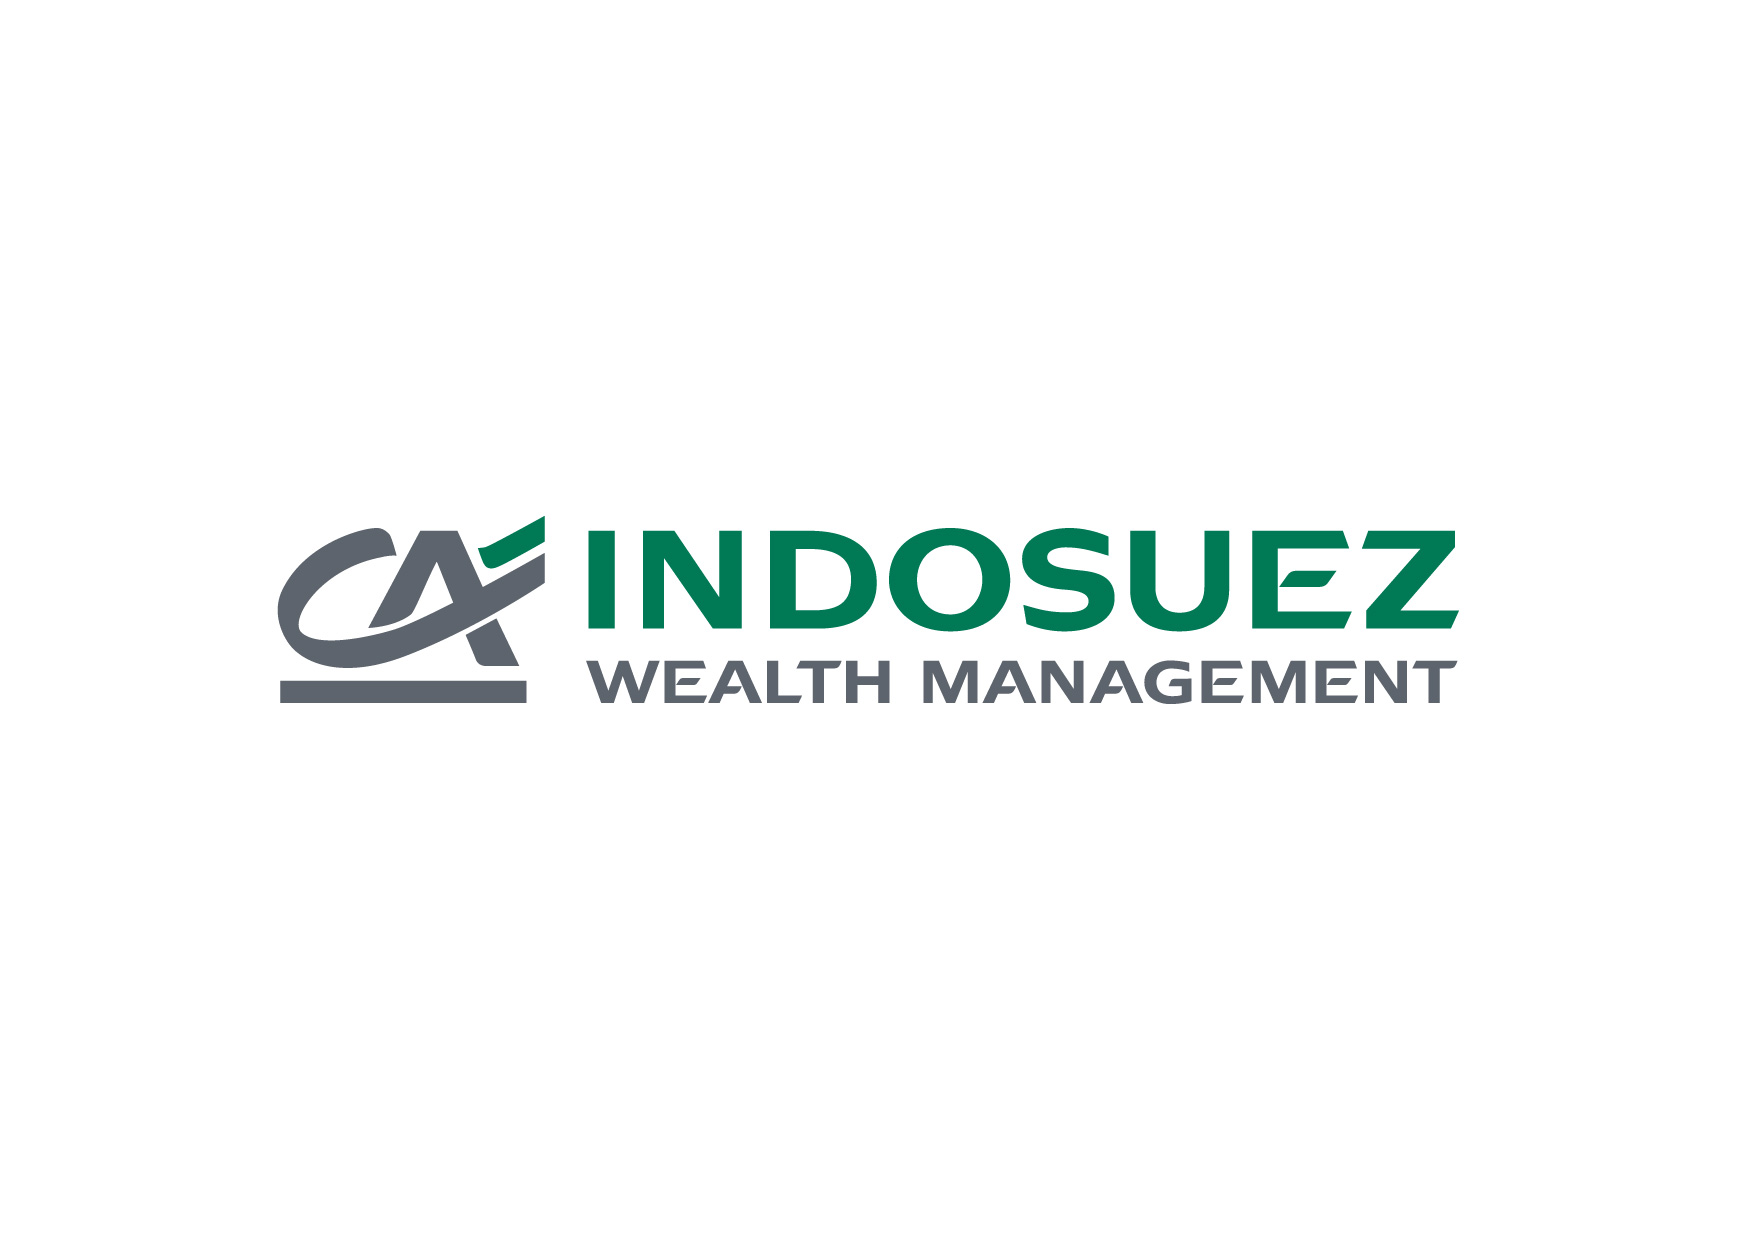 CA INDOSUEZ WM